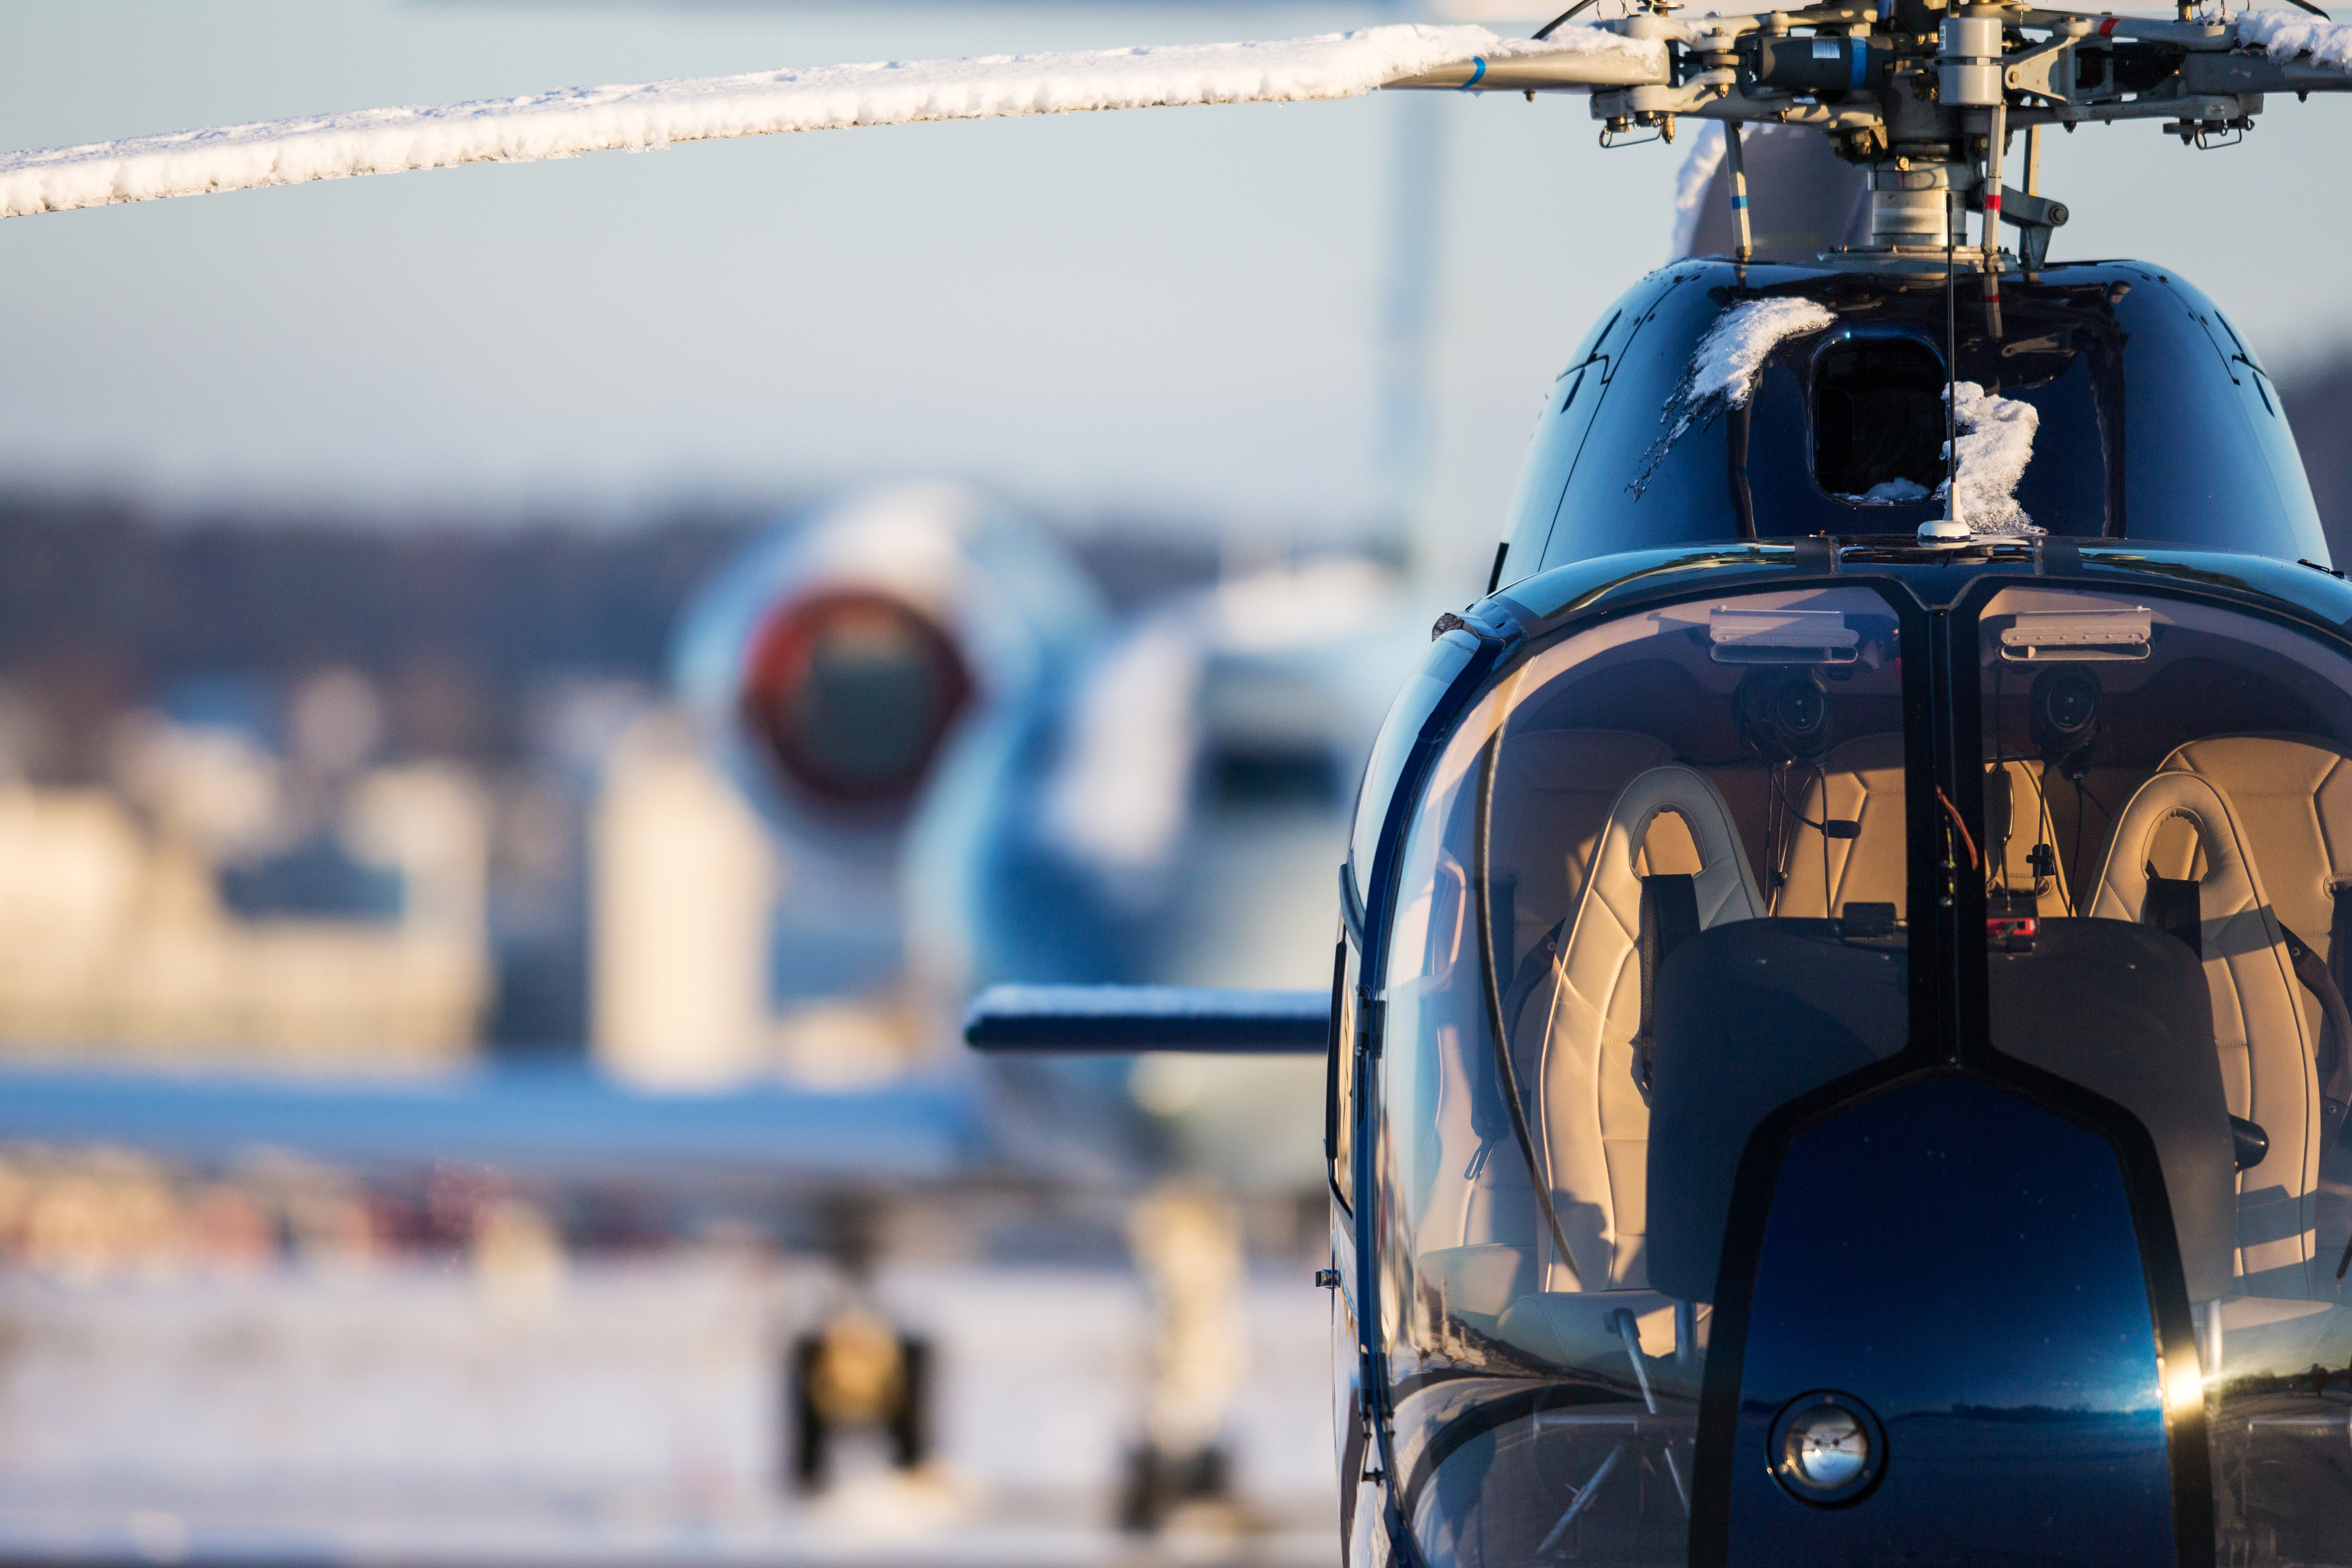 Helicopter Ride Packages Over NYC